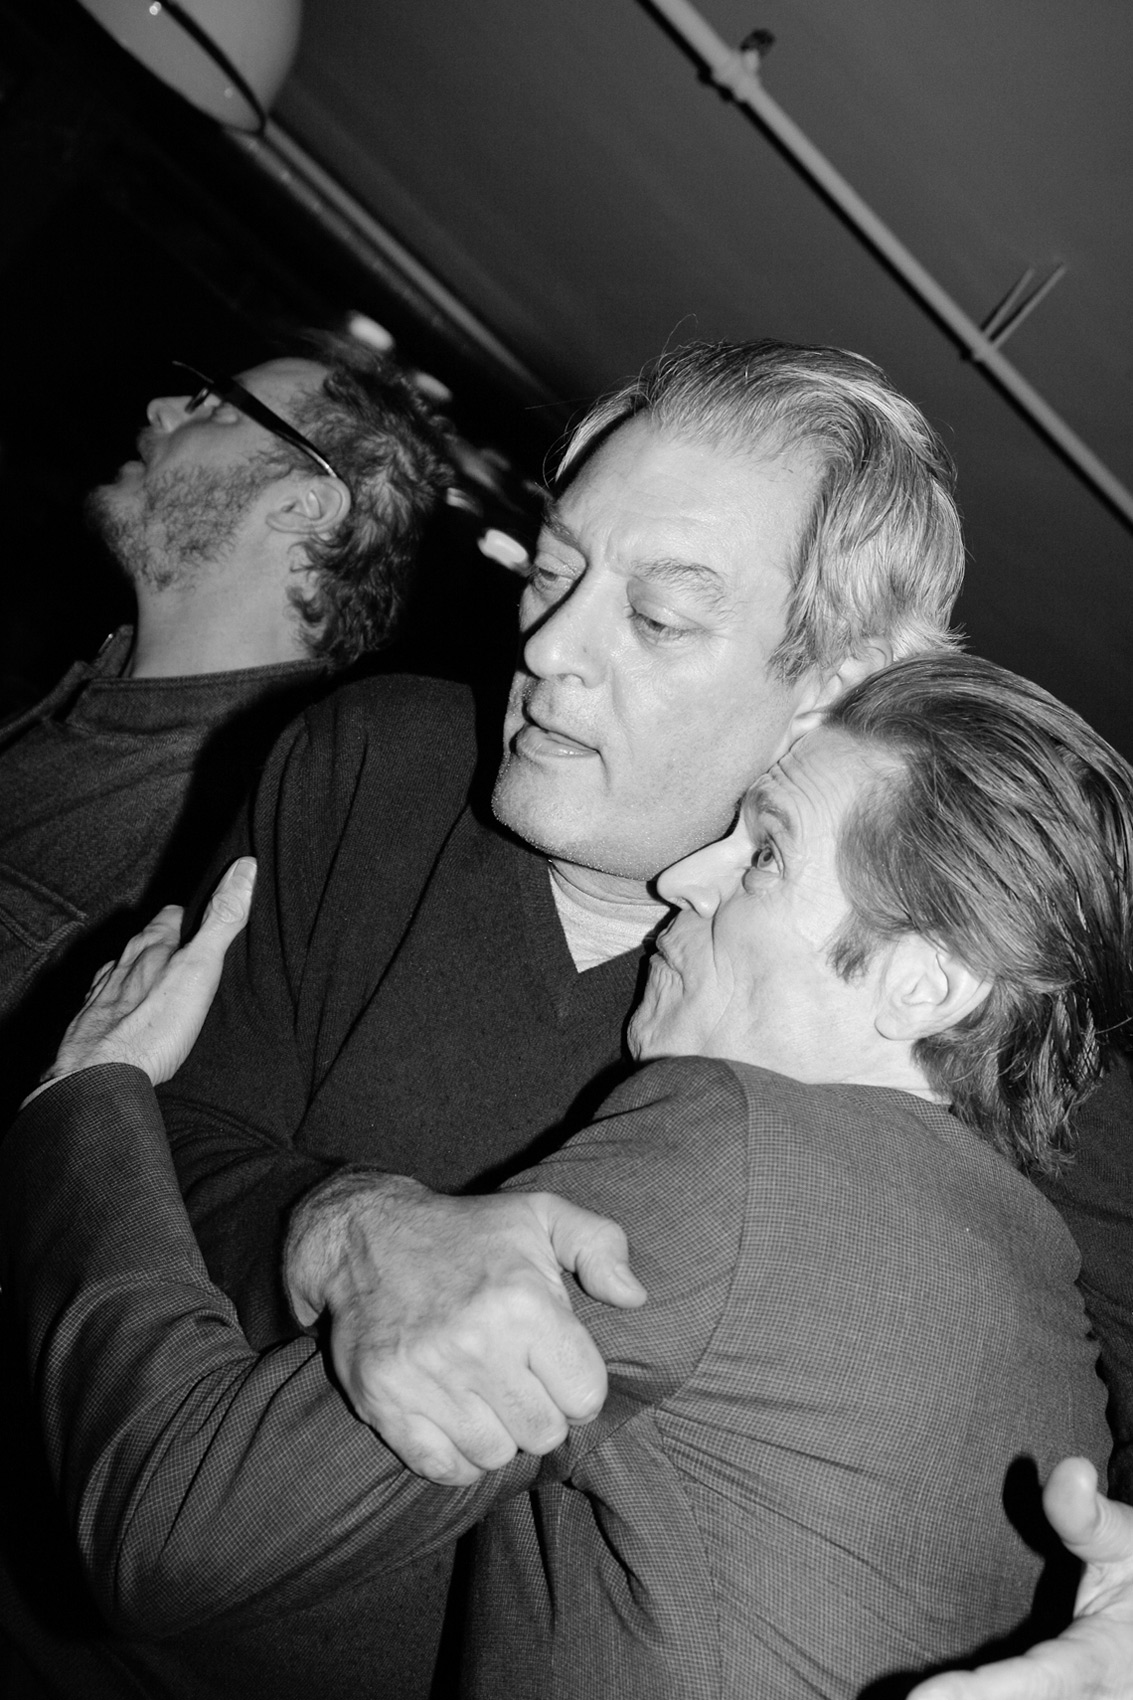 Paul Auster and Willem Dafoe